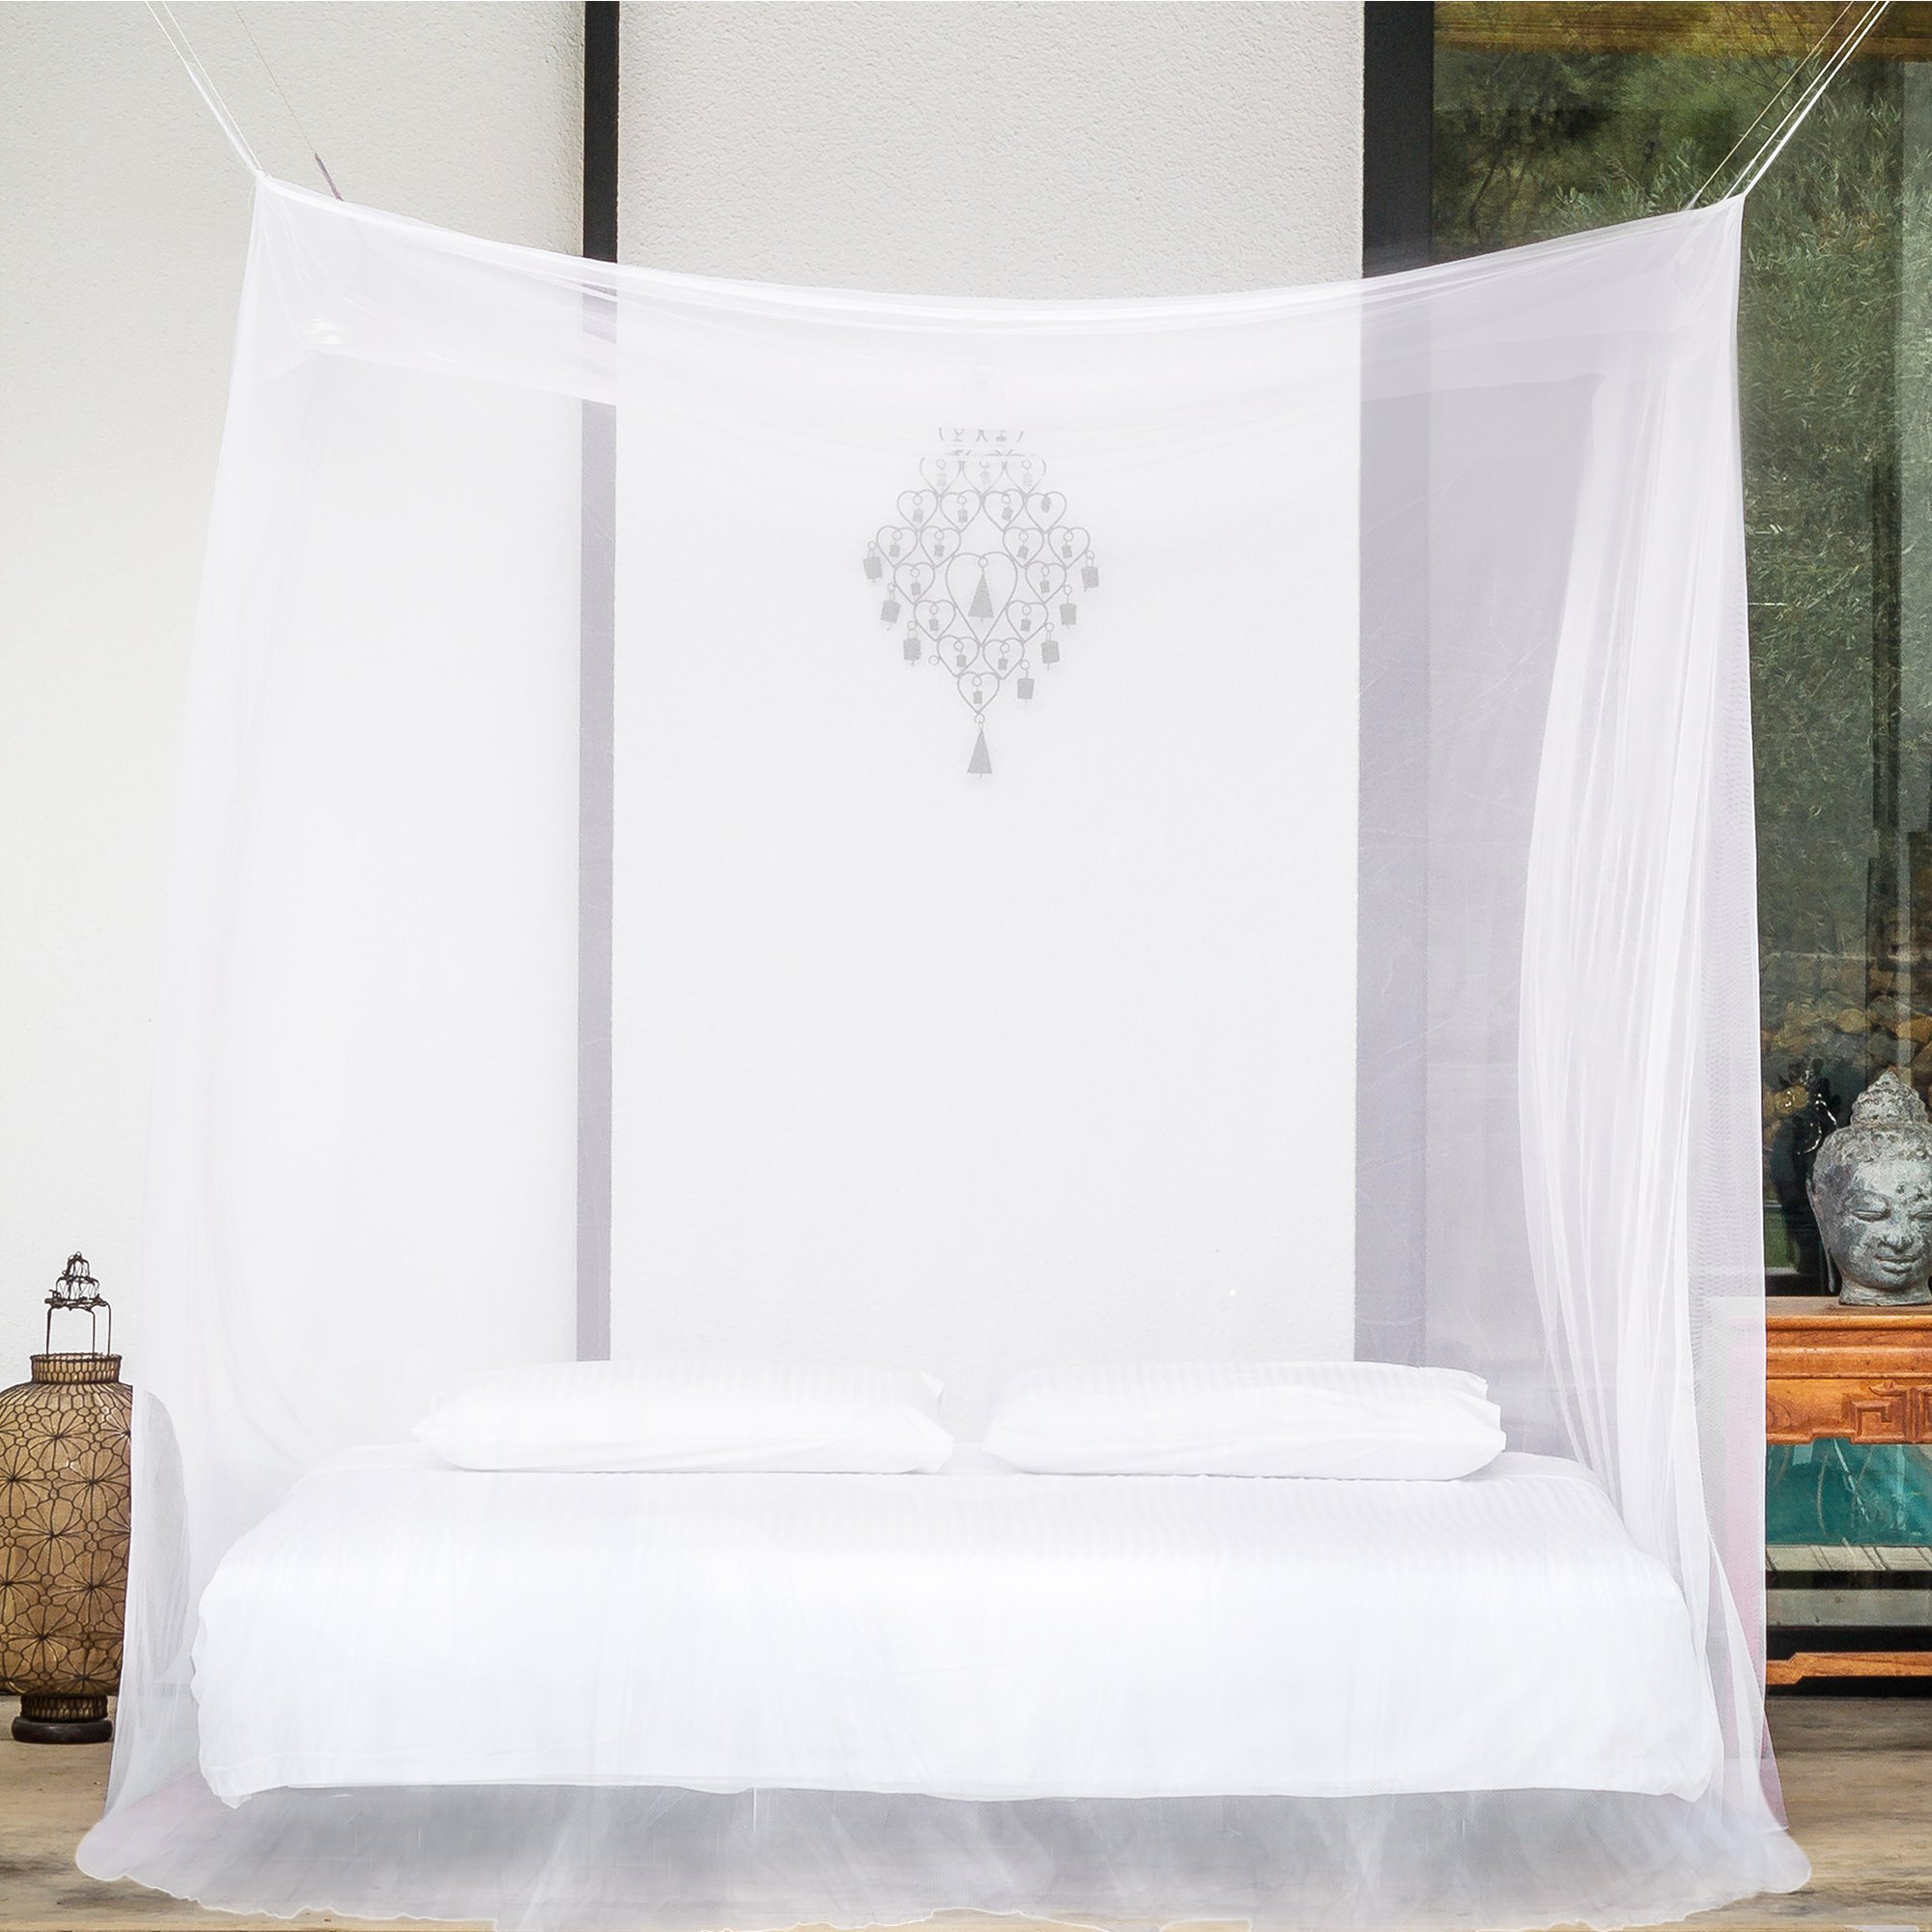 EVEN Naturals Mosquito NET for Bed Canopy, Tent for Full, Double to Super Queen Size, Large Square Curtains, White Mosquito Netting with 2 Openings, Easy Installation, Carry Bag